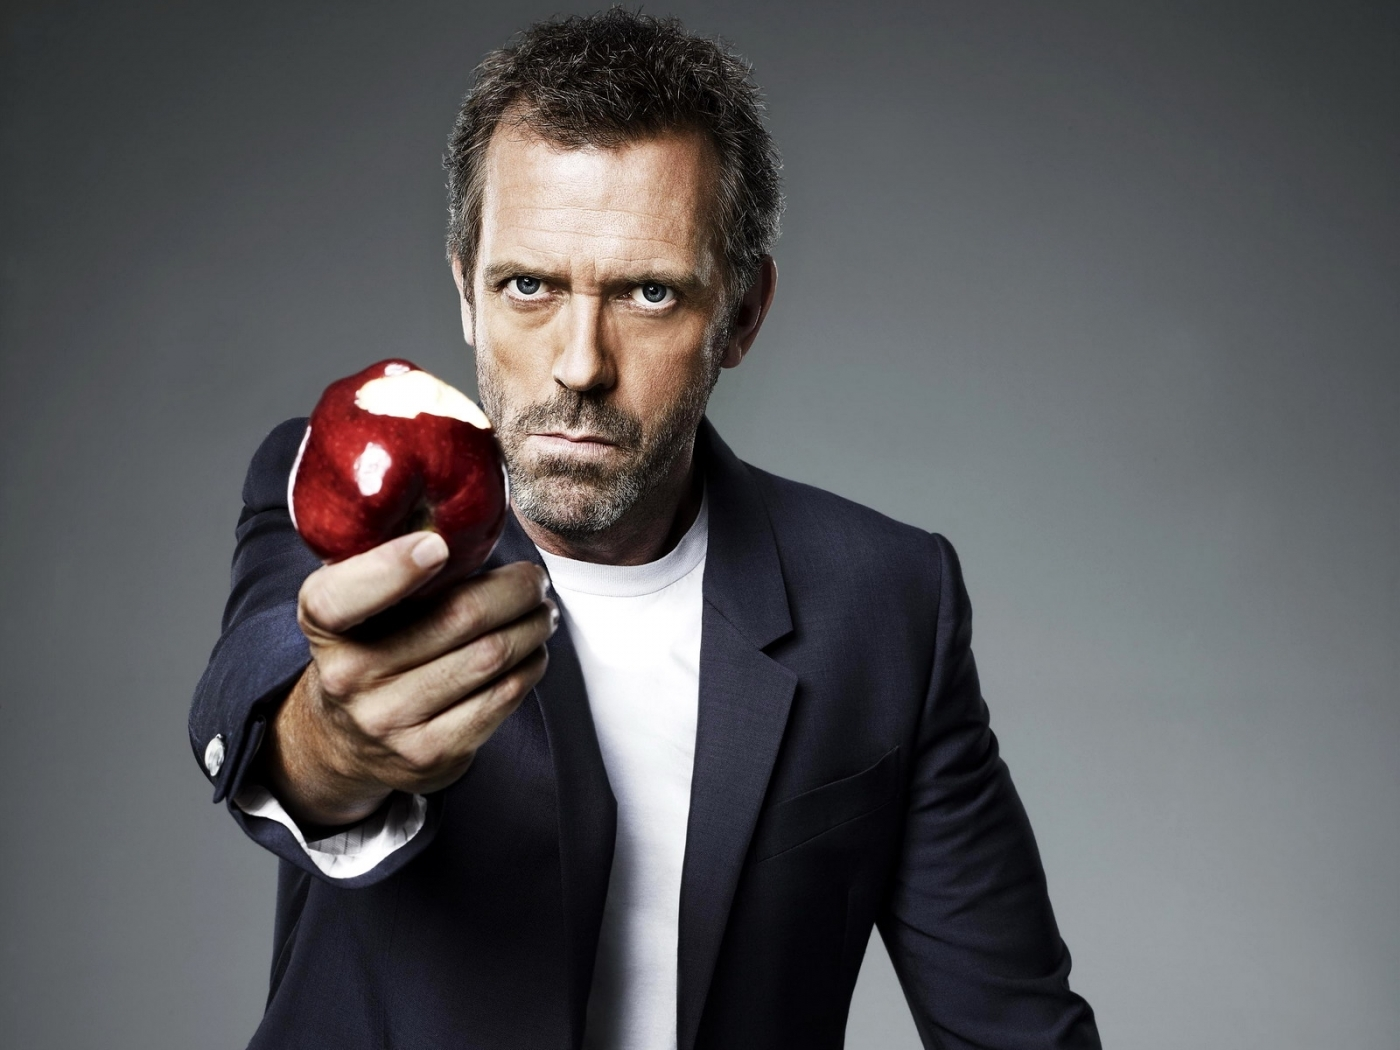 31658 download wallpaper Cinema, People, Actors, Men, House M.d., Hugh Laurie screensavers and pictures for free